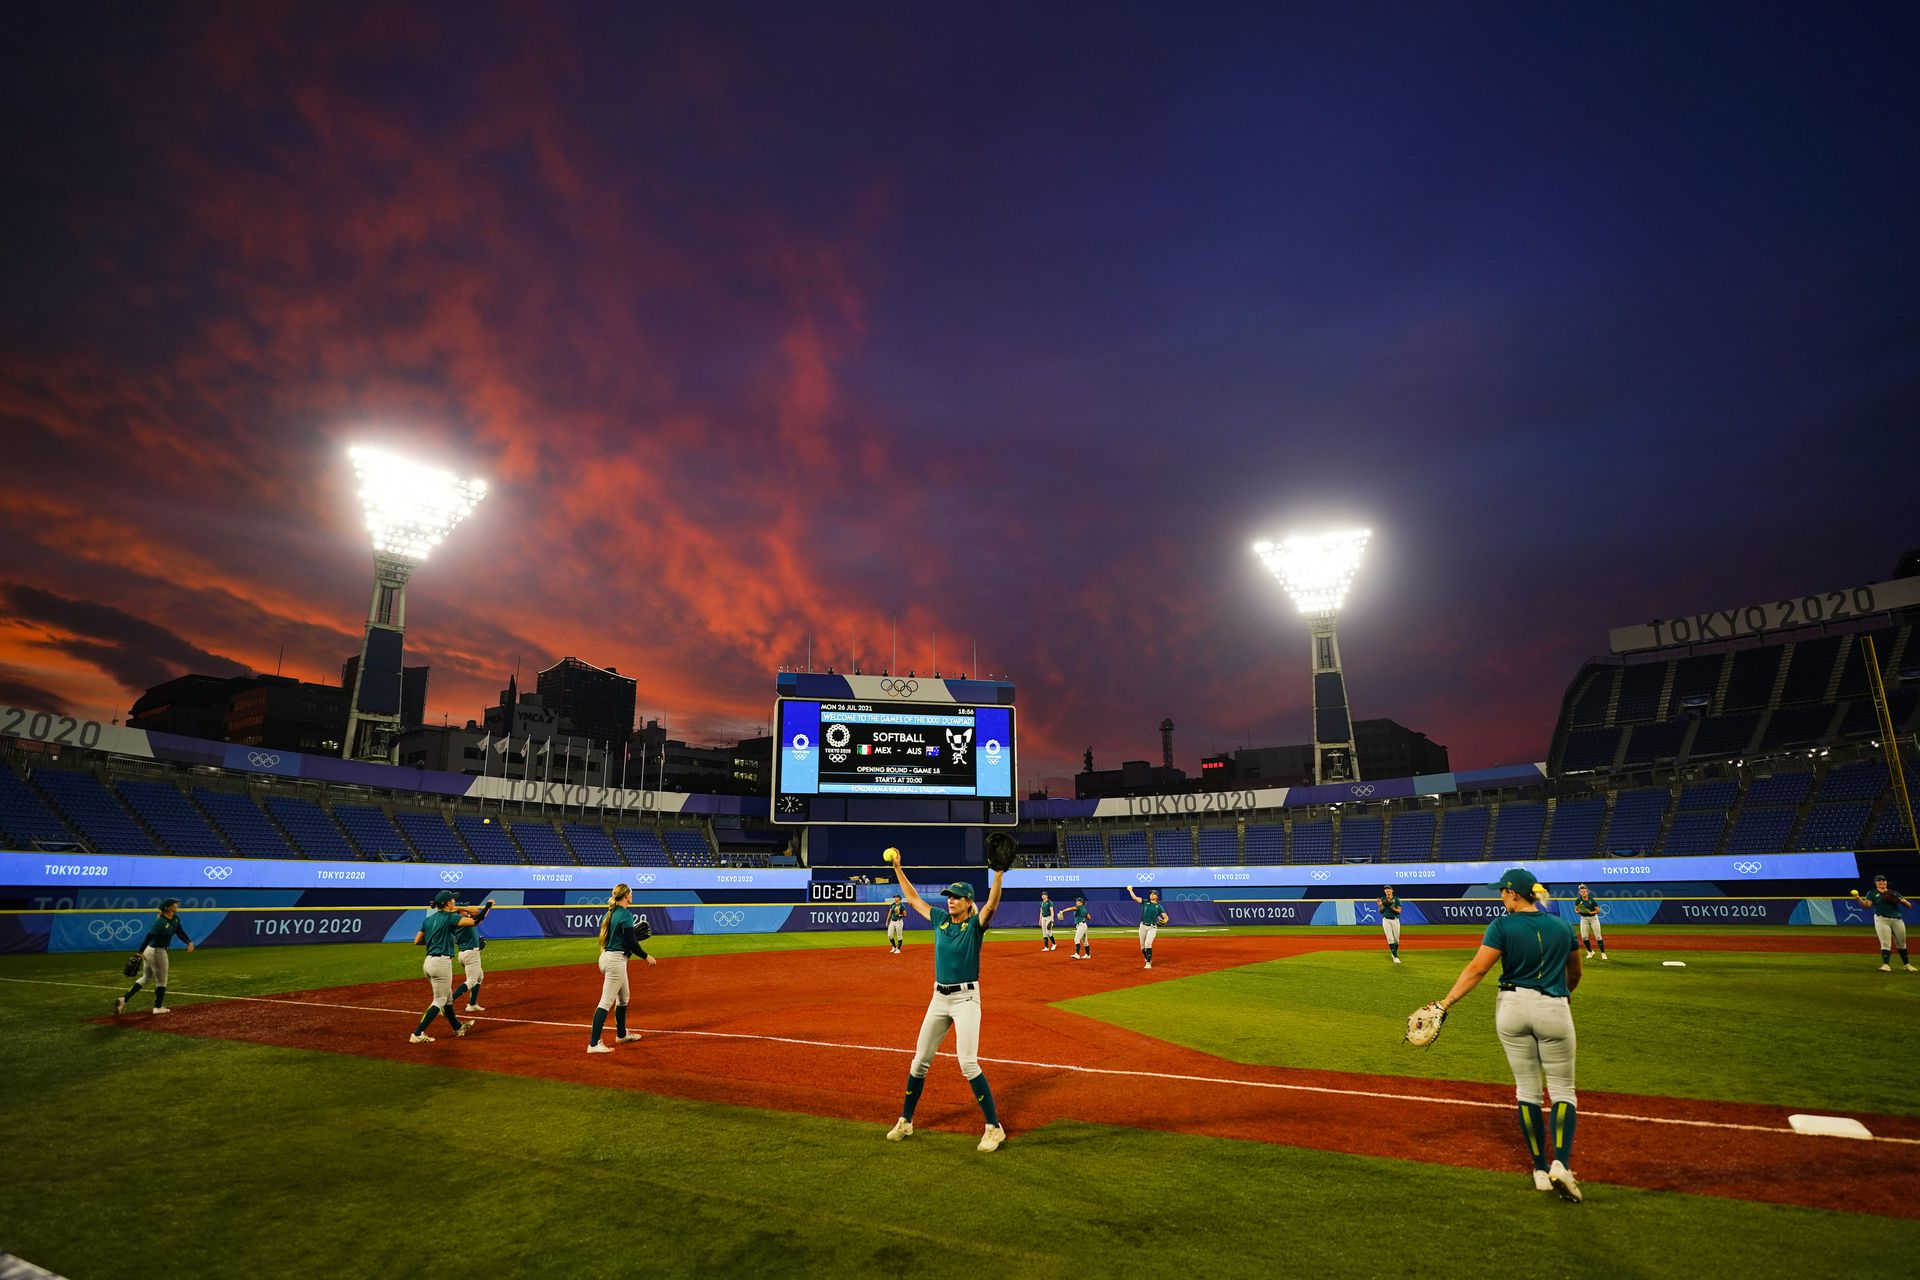 Members of team Australia warm up before a a softball game against Mexico at the 2020 Summer Olympics, Monday, July 26, 2021, in Yokohama, Japan. (AP Photo/Matt Slocum)